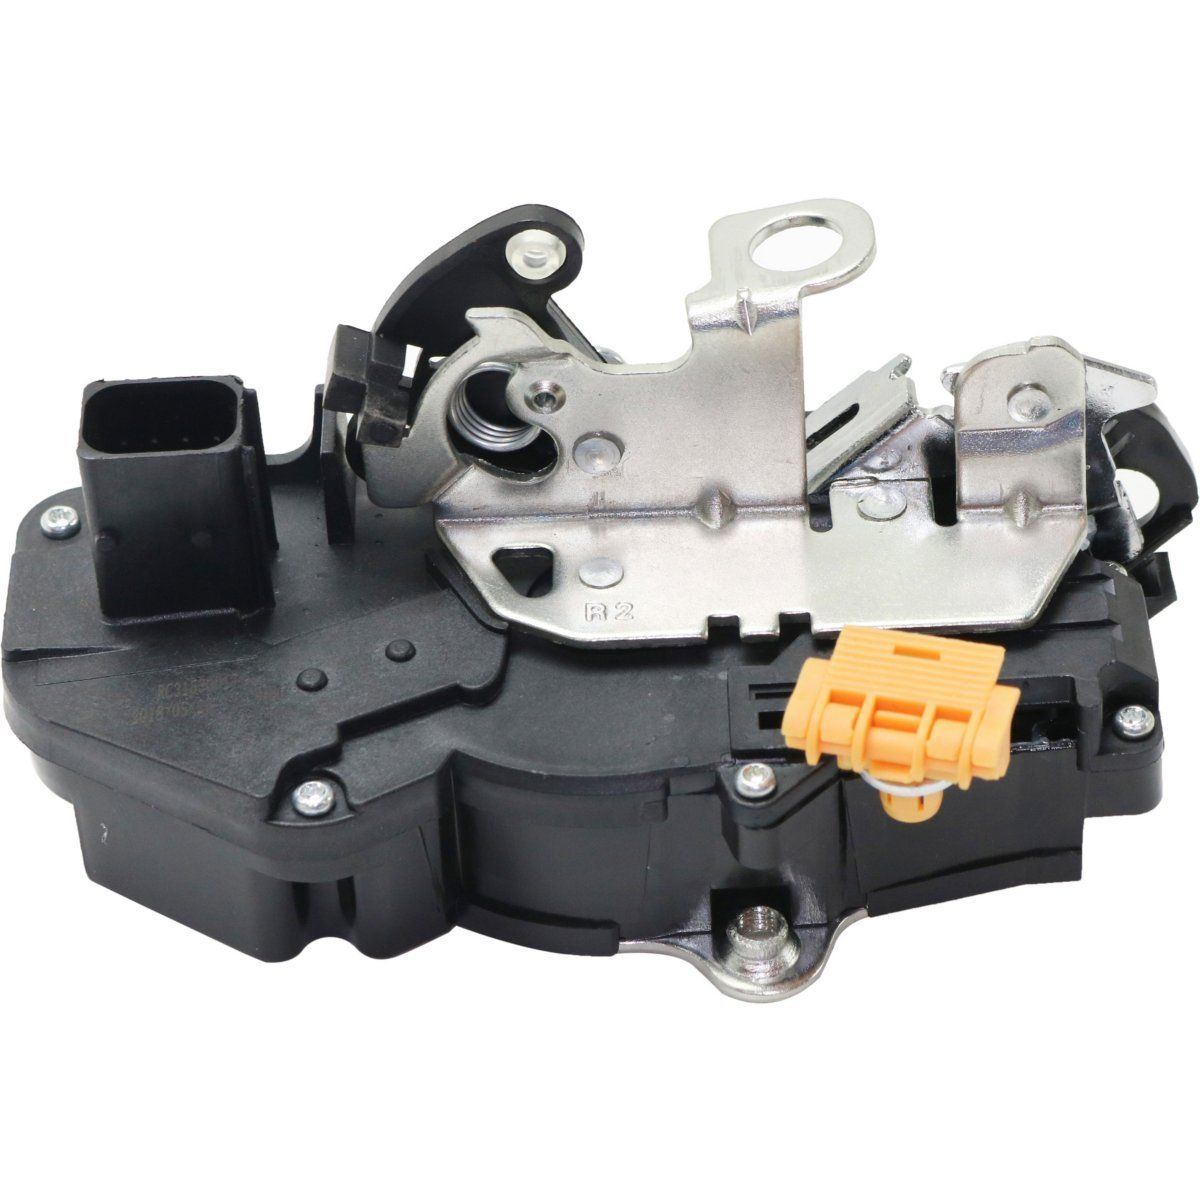 NEW DOOR LOCK ACTUATOR FRONT RIGHT FITS 07-09 CHEVROLET ...